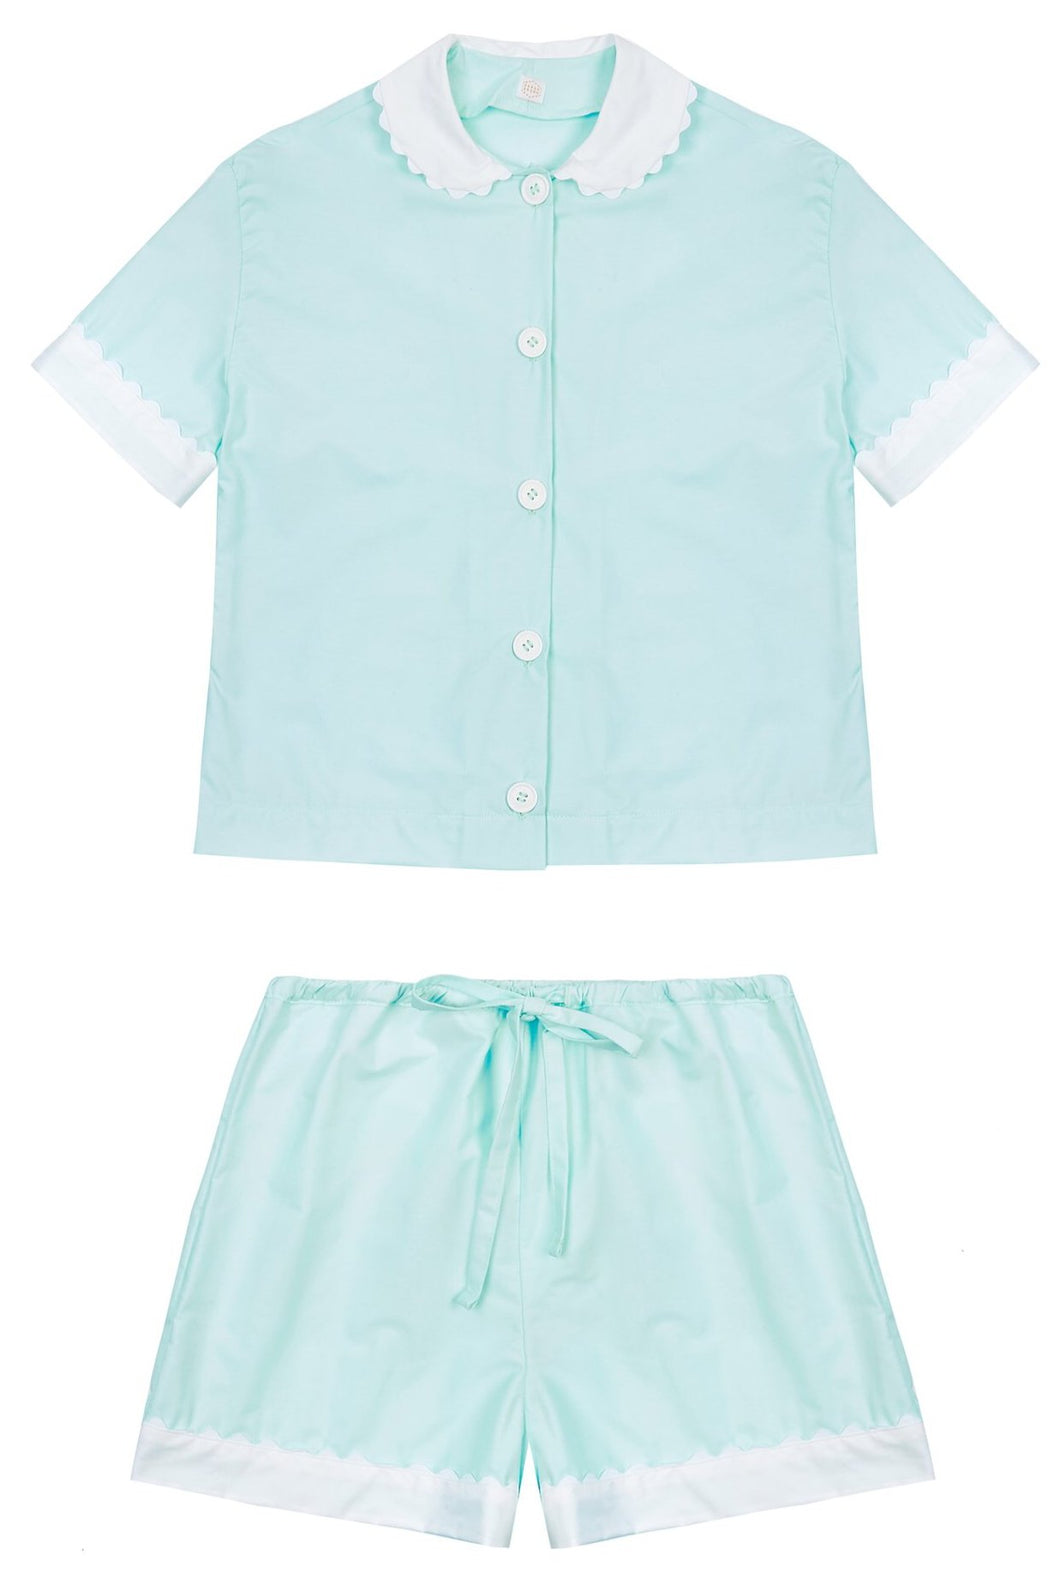 100% Cotton Poplin Pyjamas in Mint with White Contrasting Collar and Cuffs with Ric Rac Trim